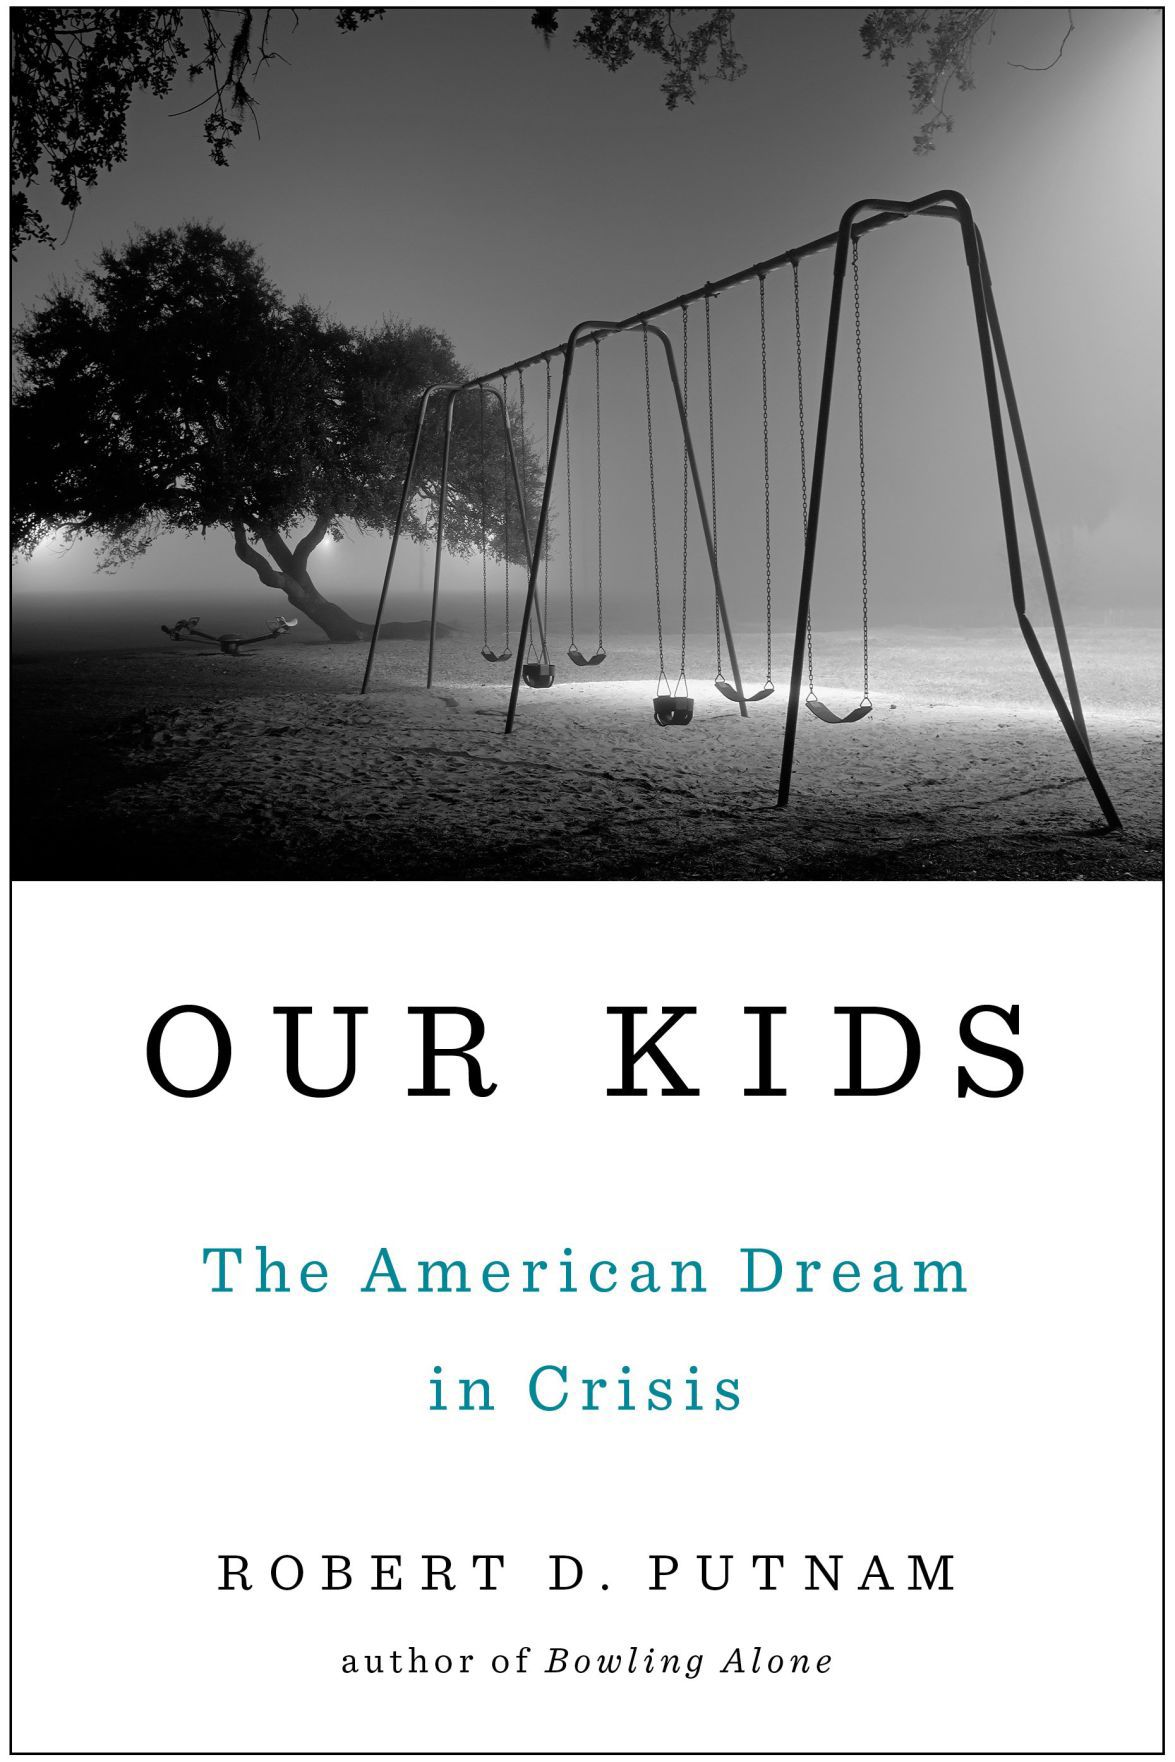 'Our Kids'